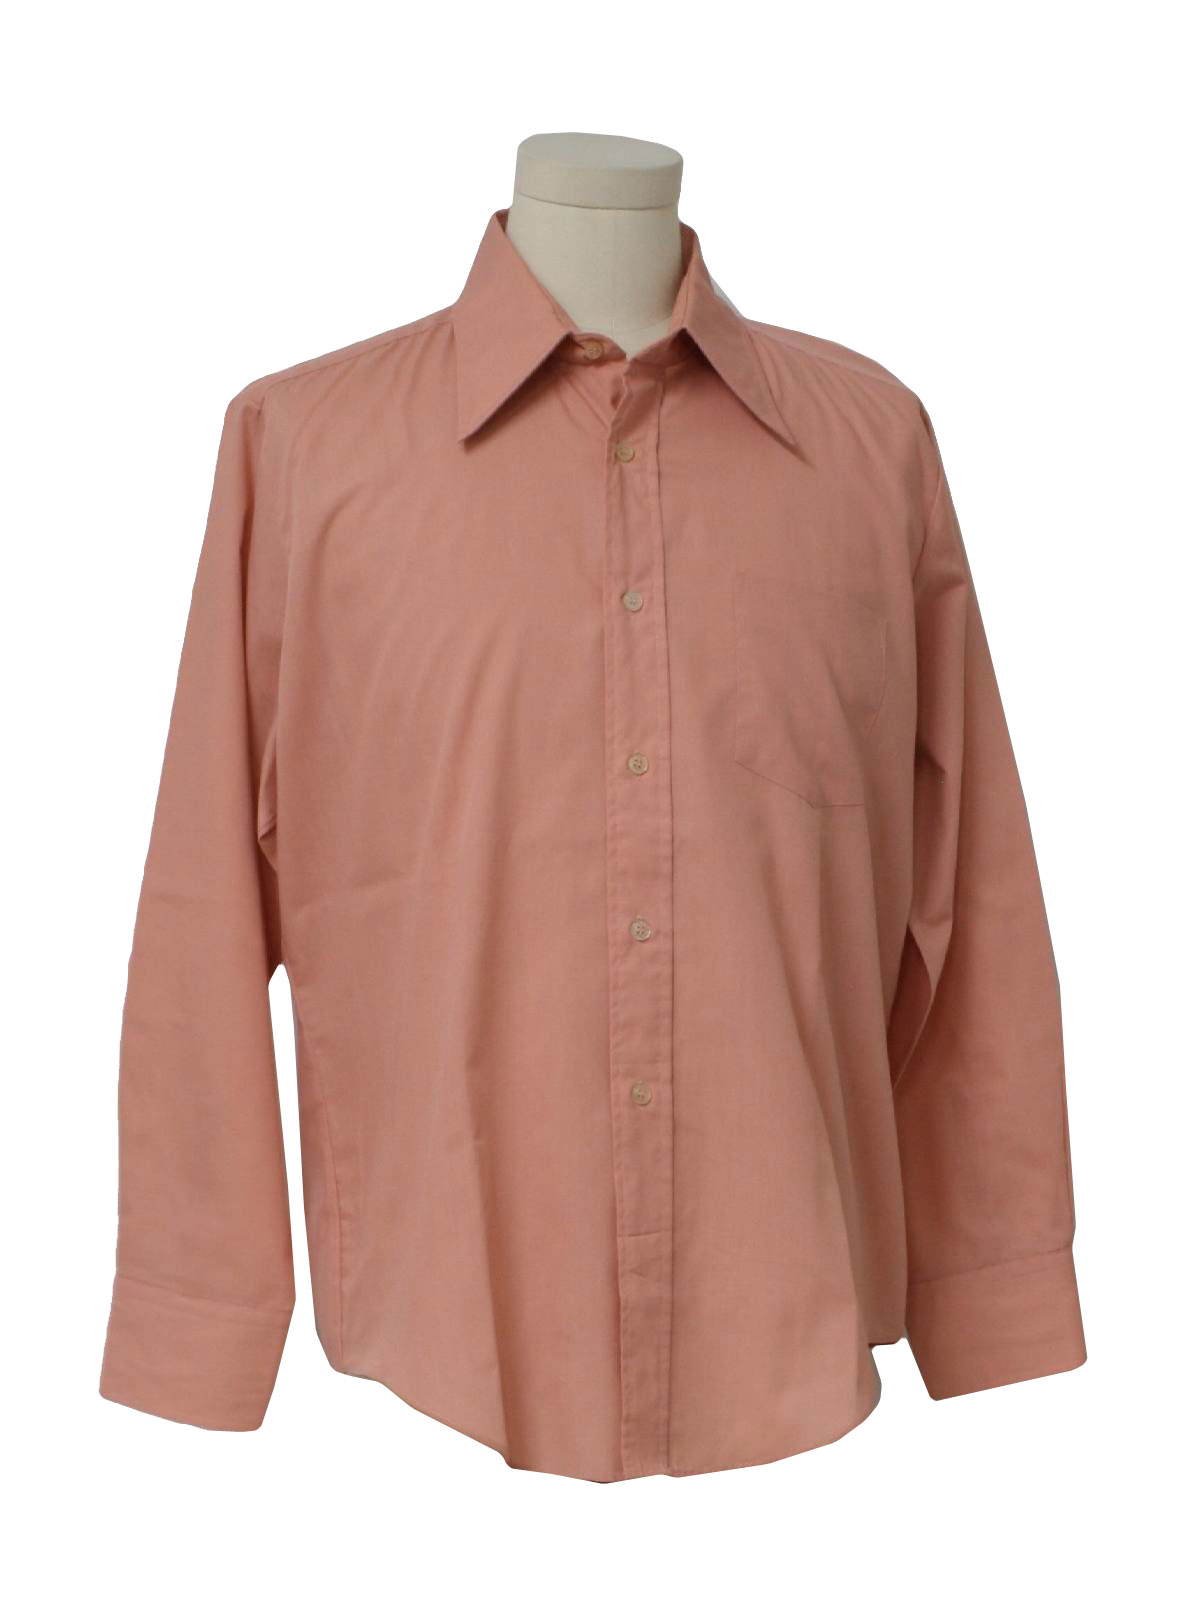 1970s Vintage Fruit Of The Loom Shirt 70s Fruit Of The Loom Mens